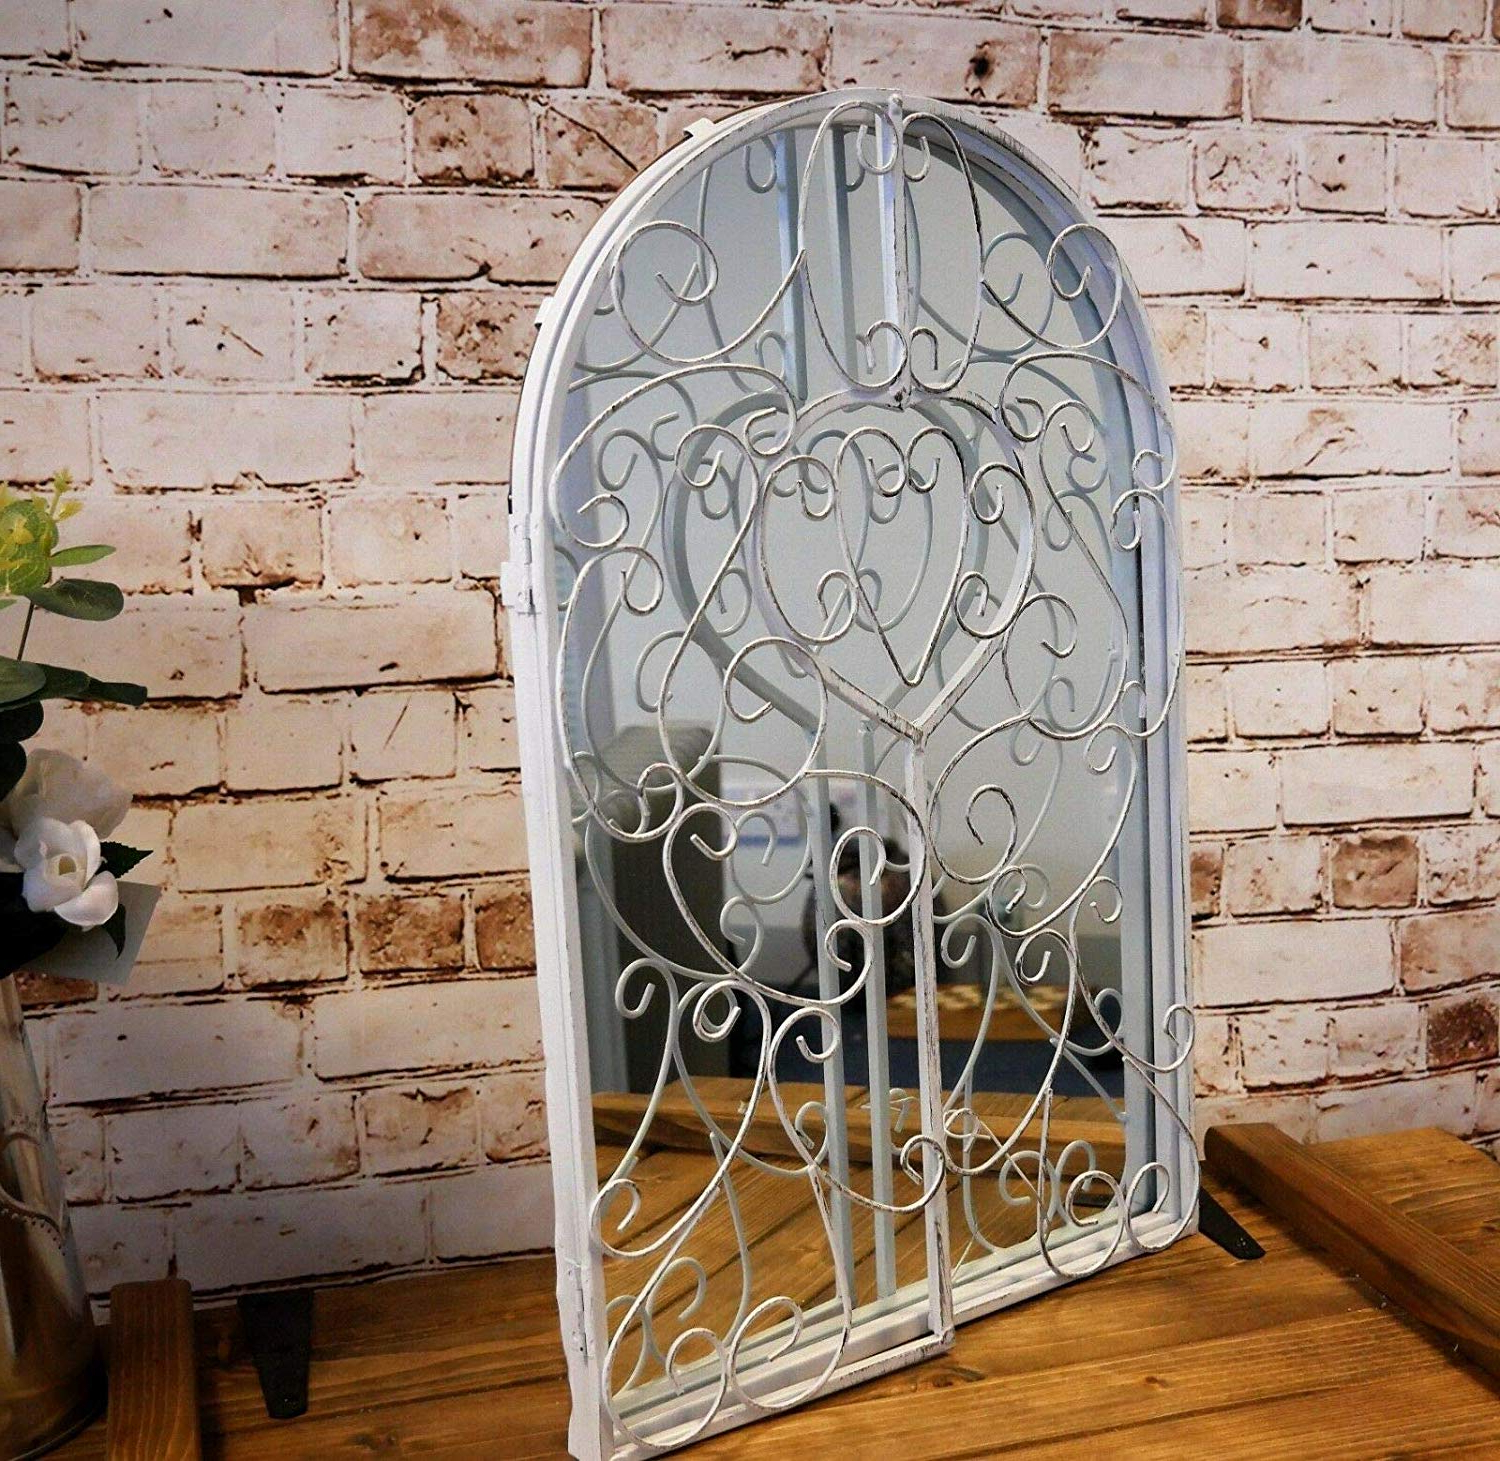 Wall Mirrors With Shutters Throughout Preferred Homezone® Large Metal Vintage Garden Mirror Retro Shabby Chic Style White  Metal Window Shutter Style Bathroom Wall Mirrors Wall Mountable Home Decor (View 12 of 20)